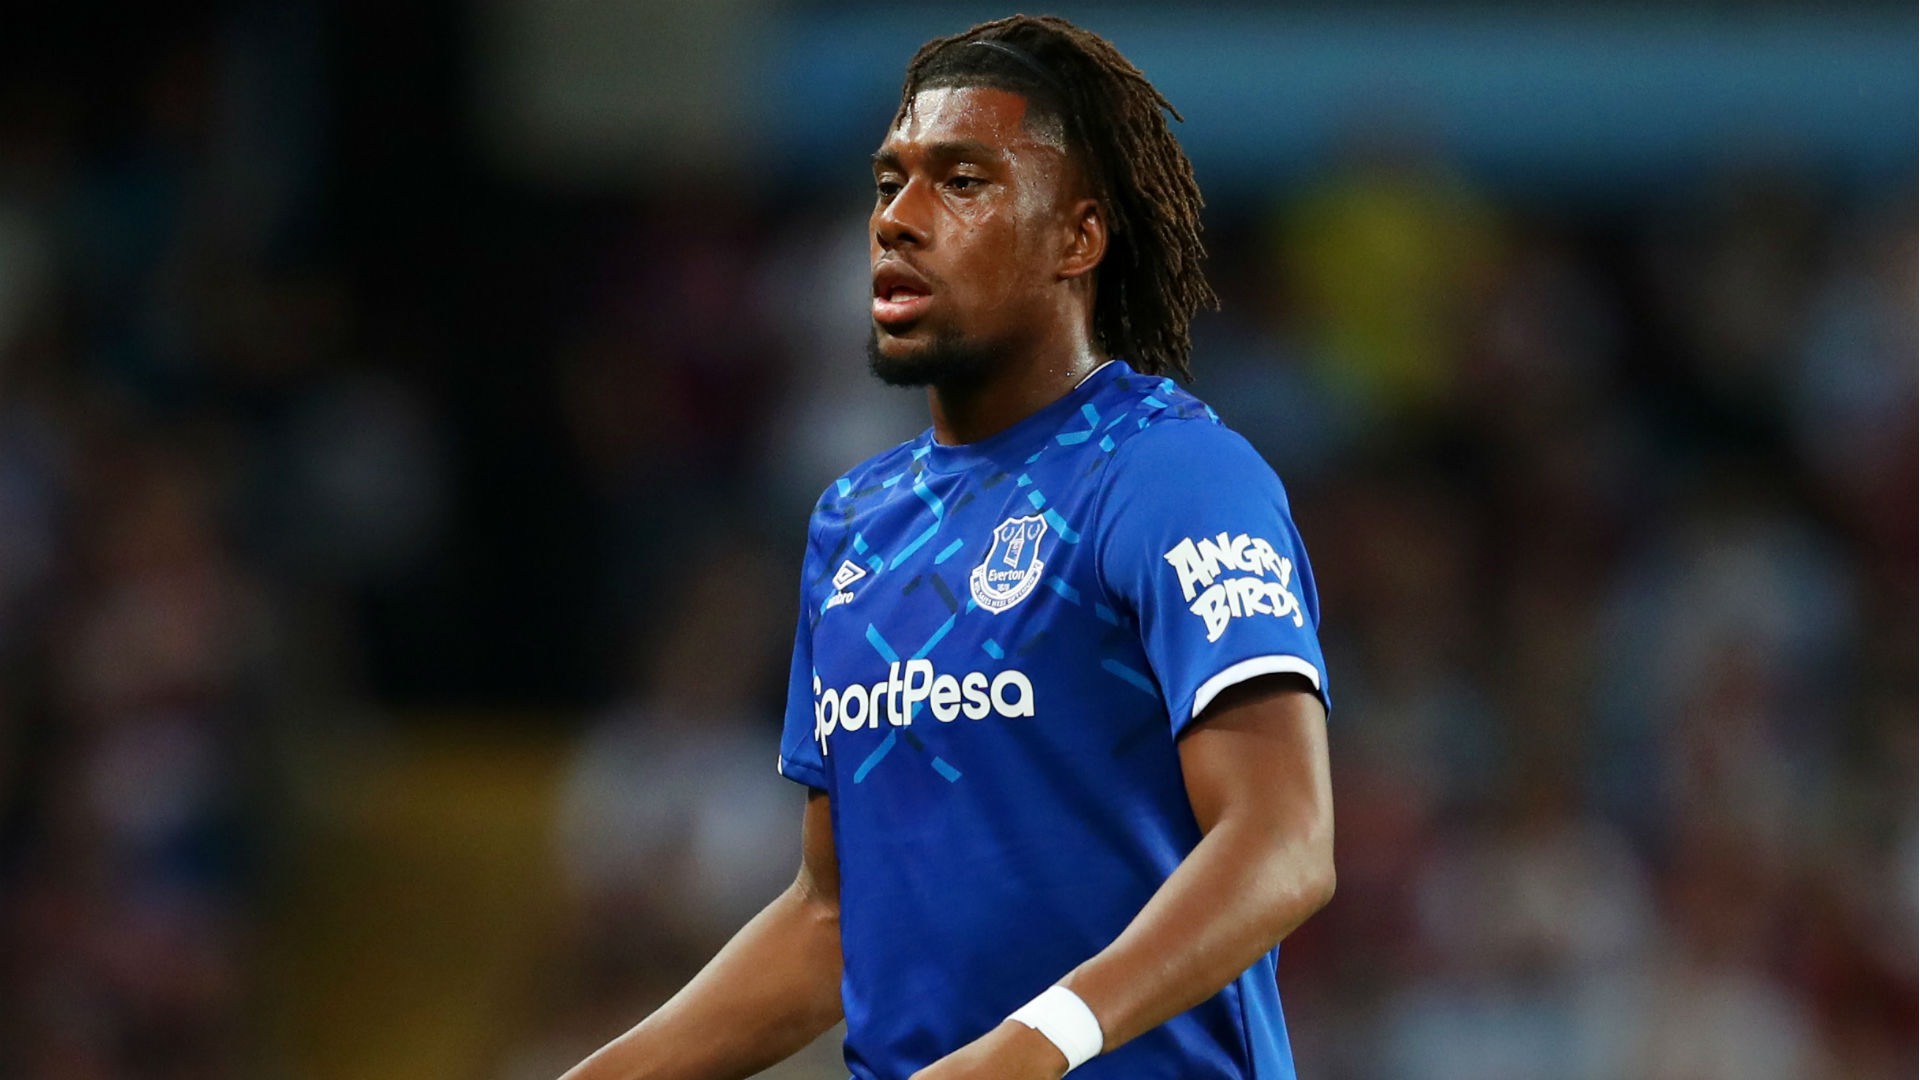 Iwobi's Everton lose at home to Sheffield United